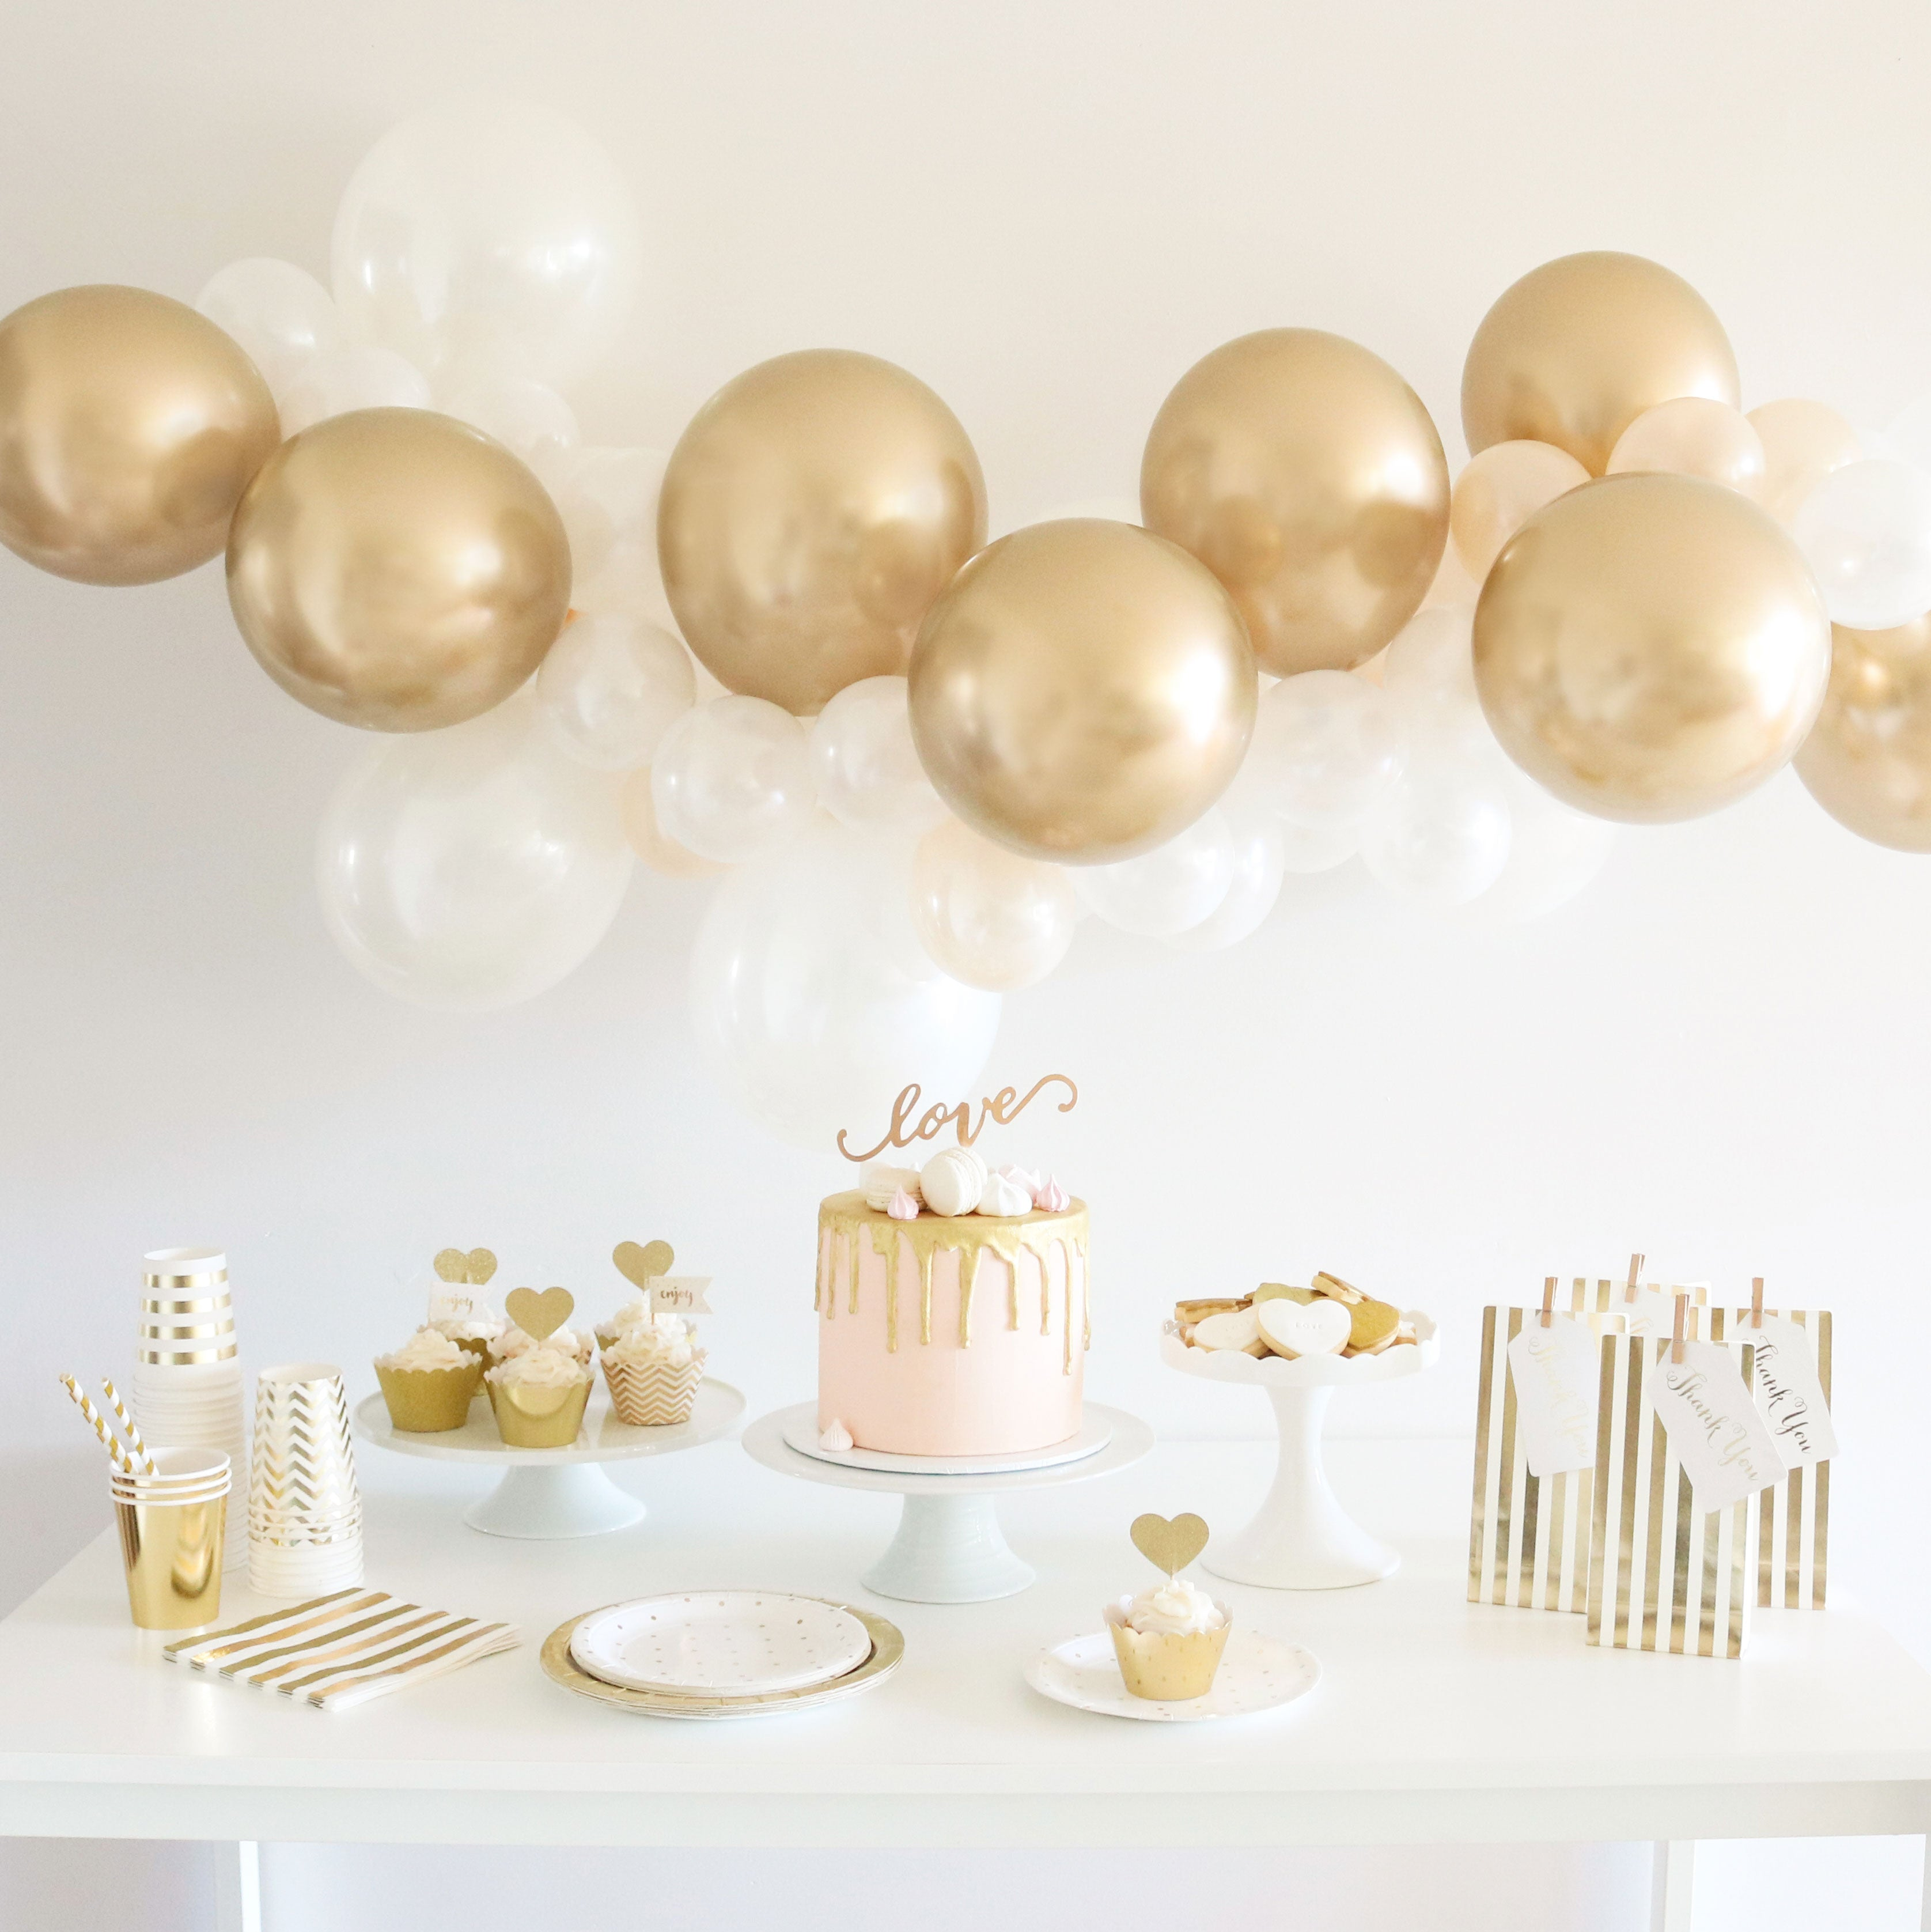 Gold White Mini Balloon Garland Kit Lovely Occasions